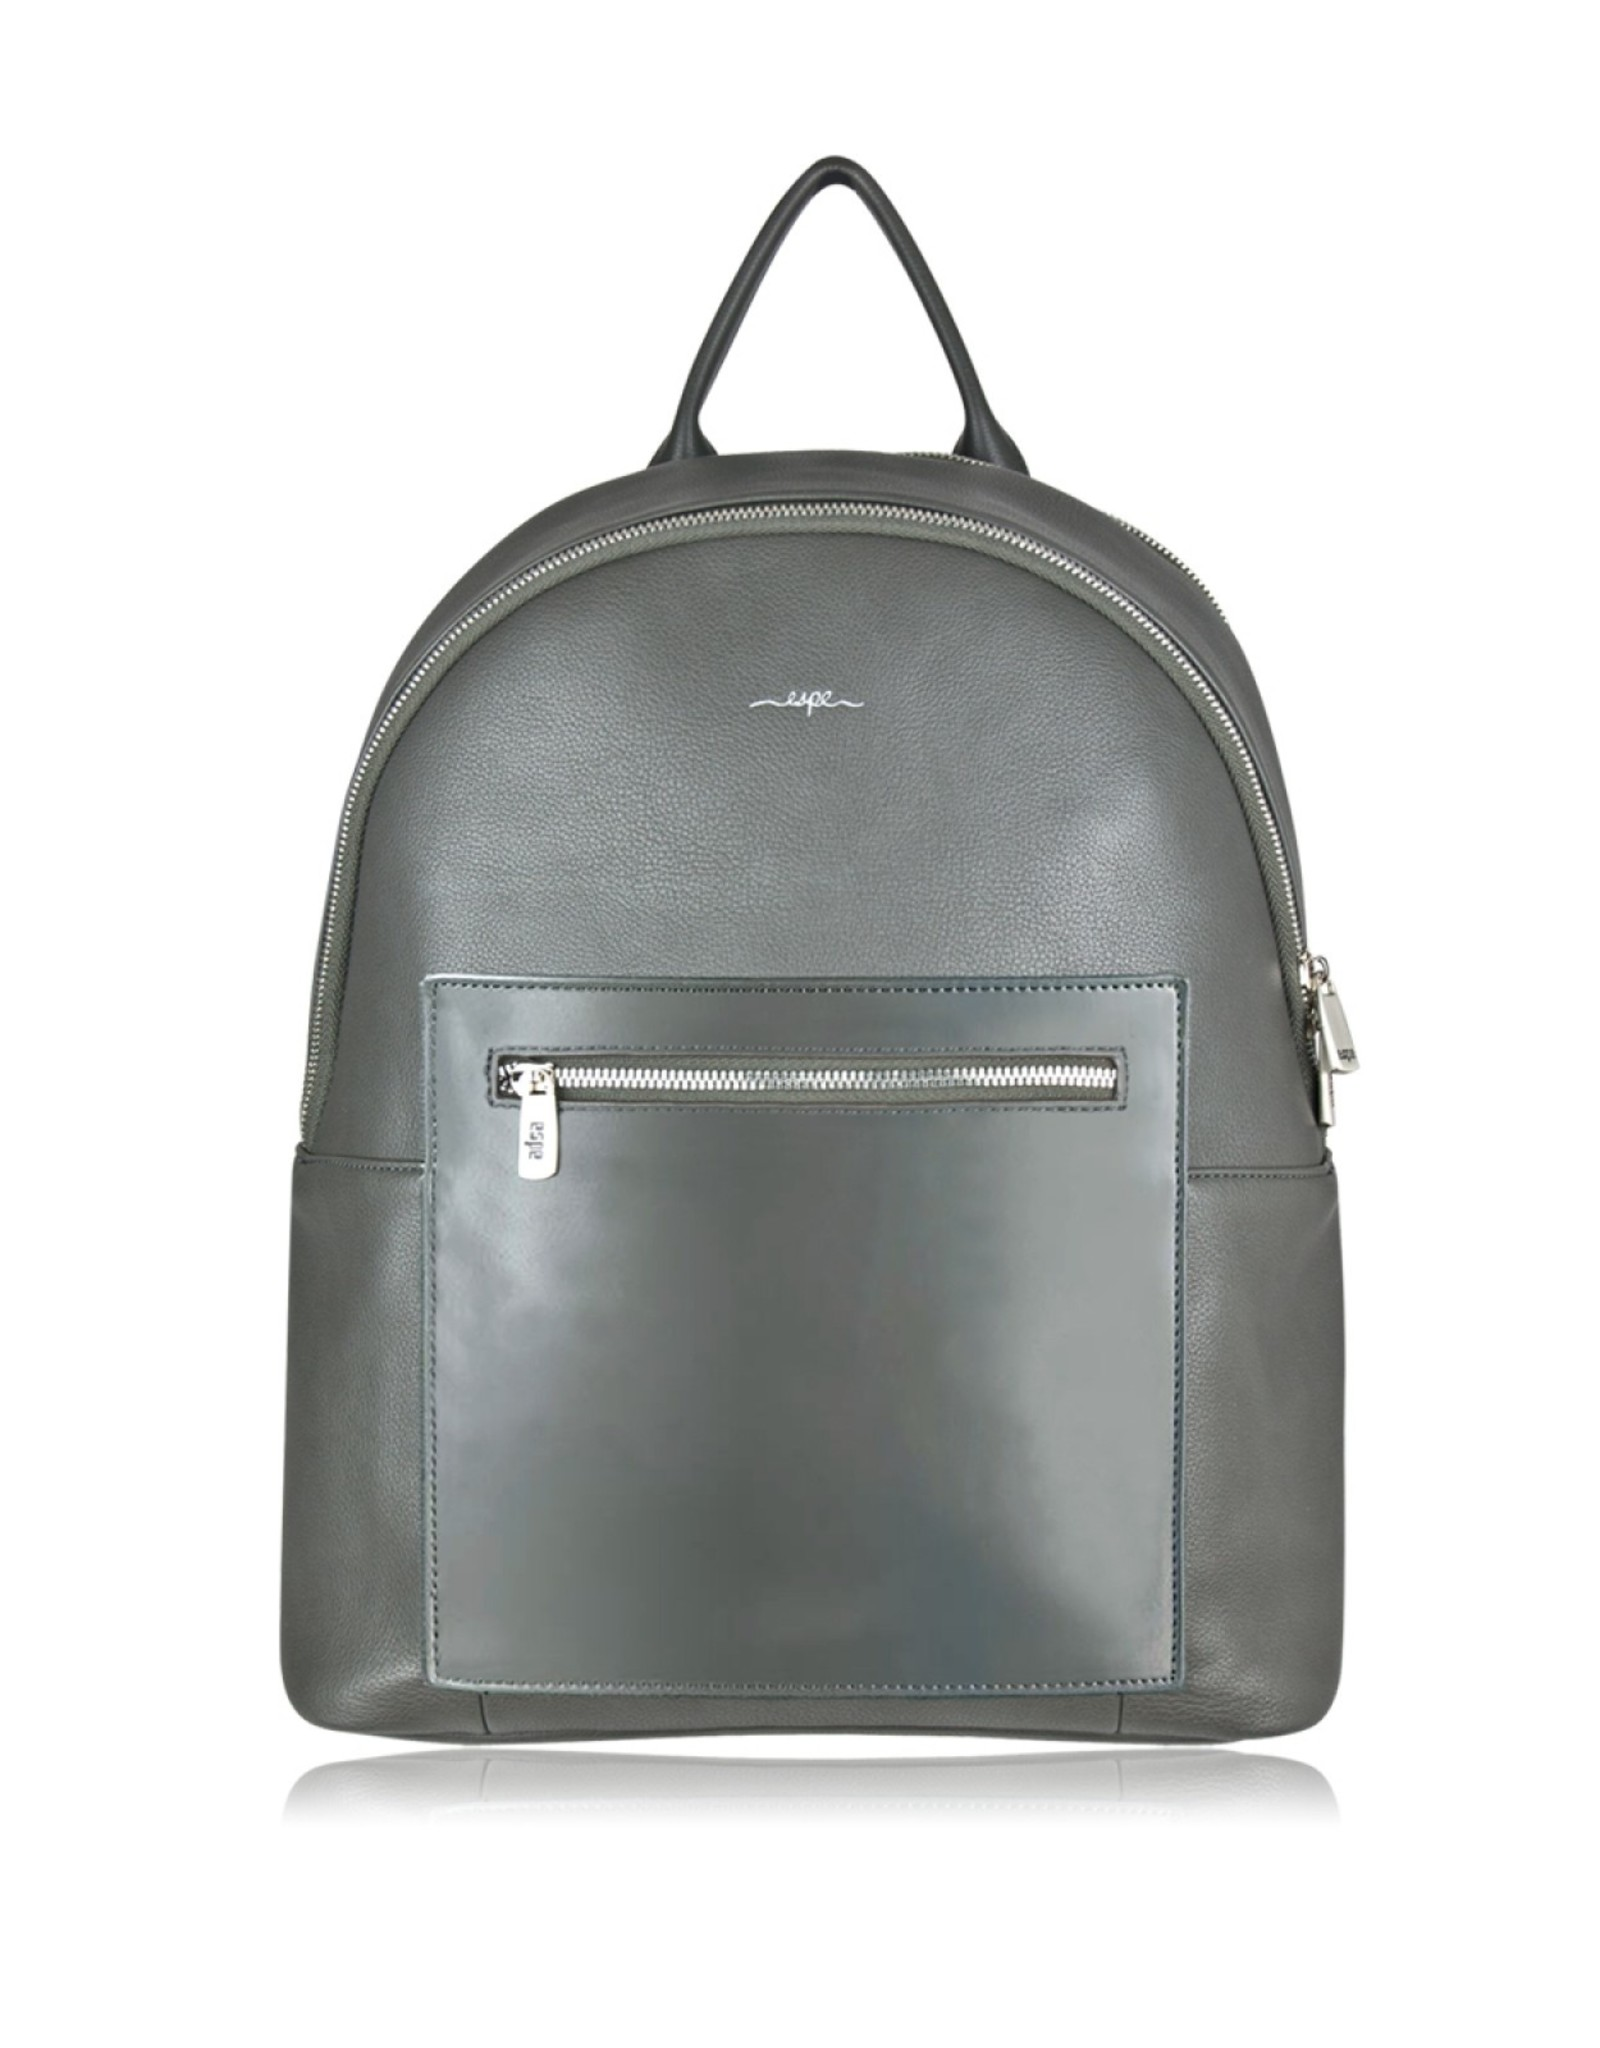 Espe, Jacob Back Pack, Grey